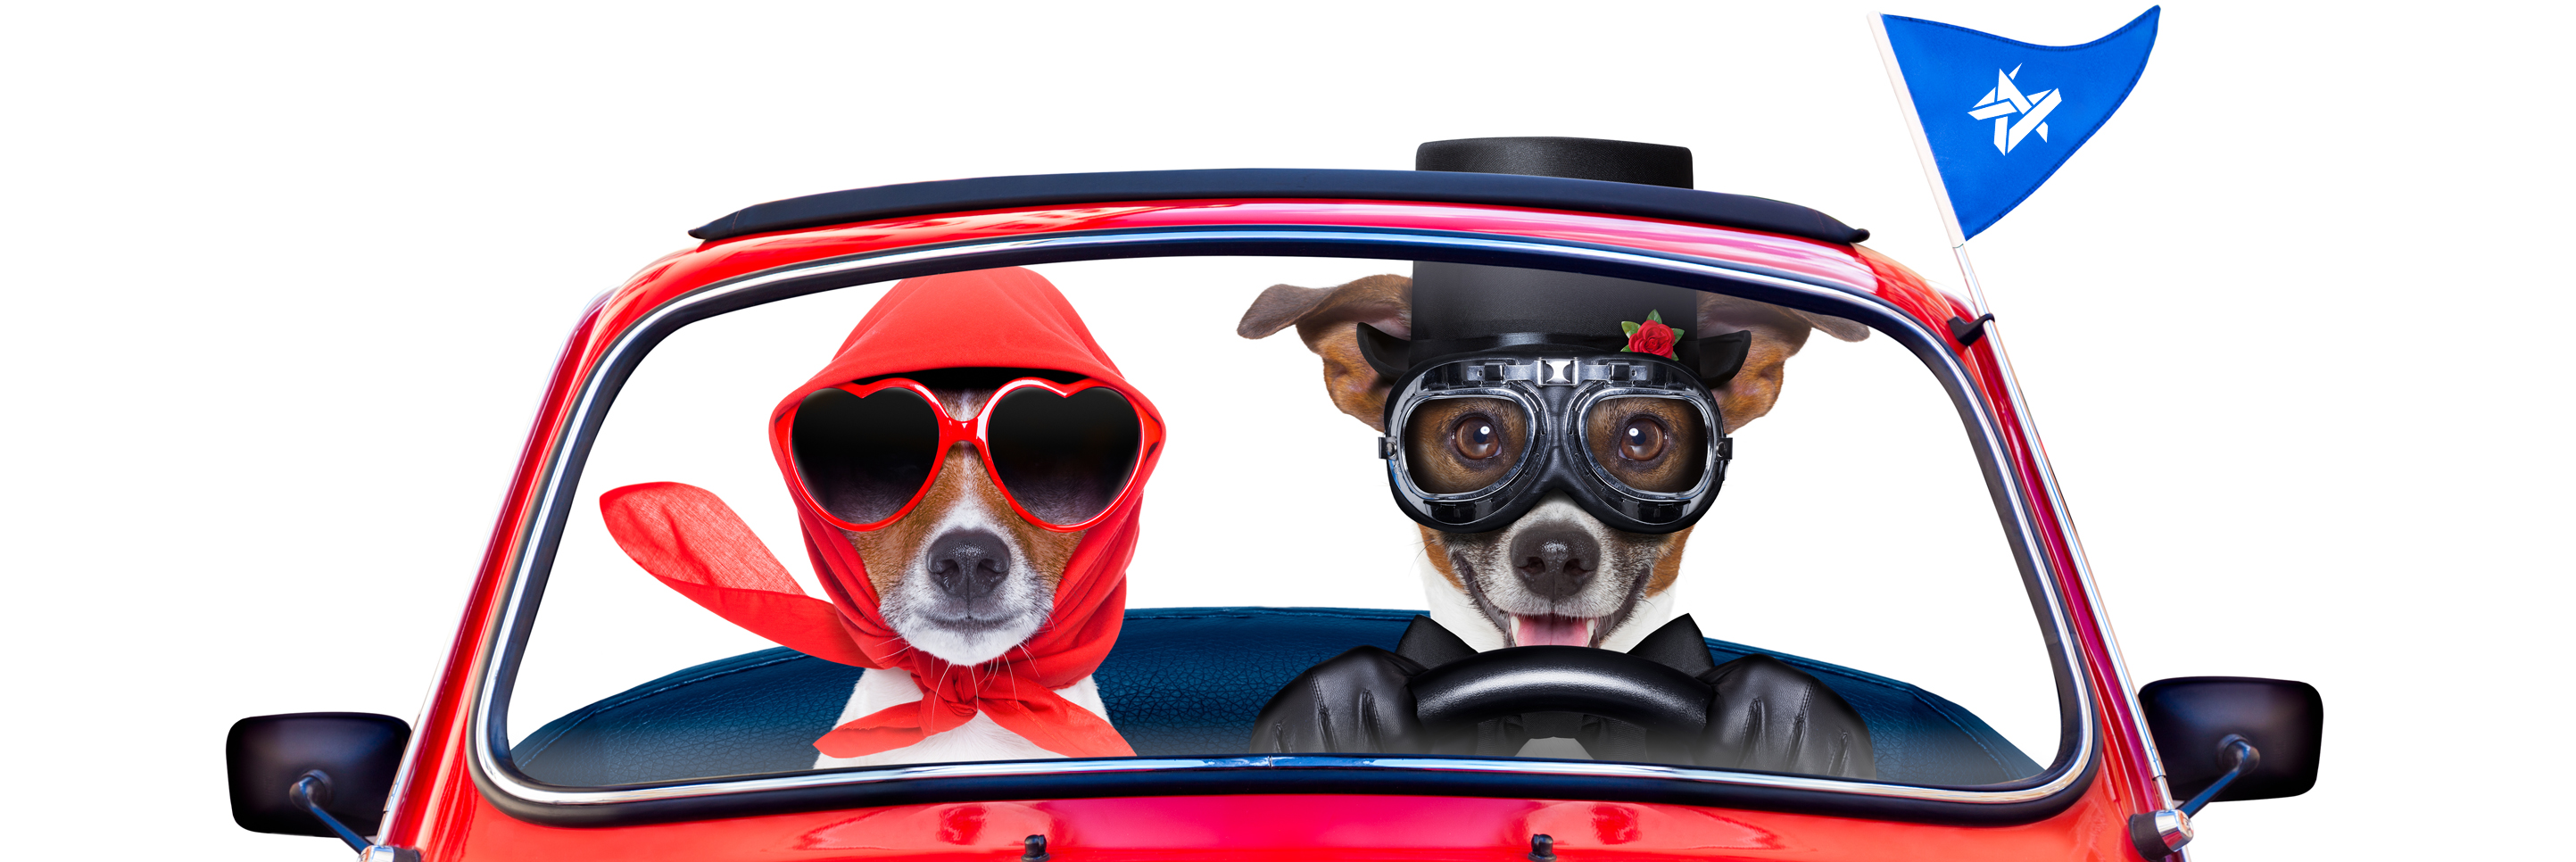 Picture of dogs driving a car